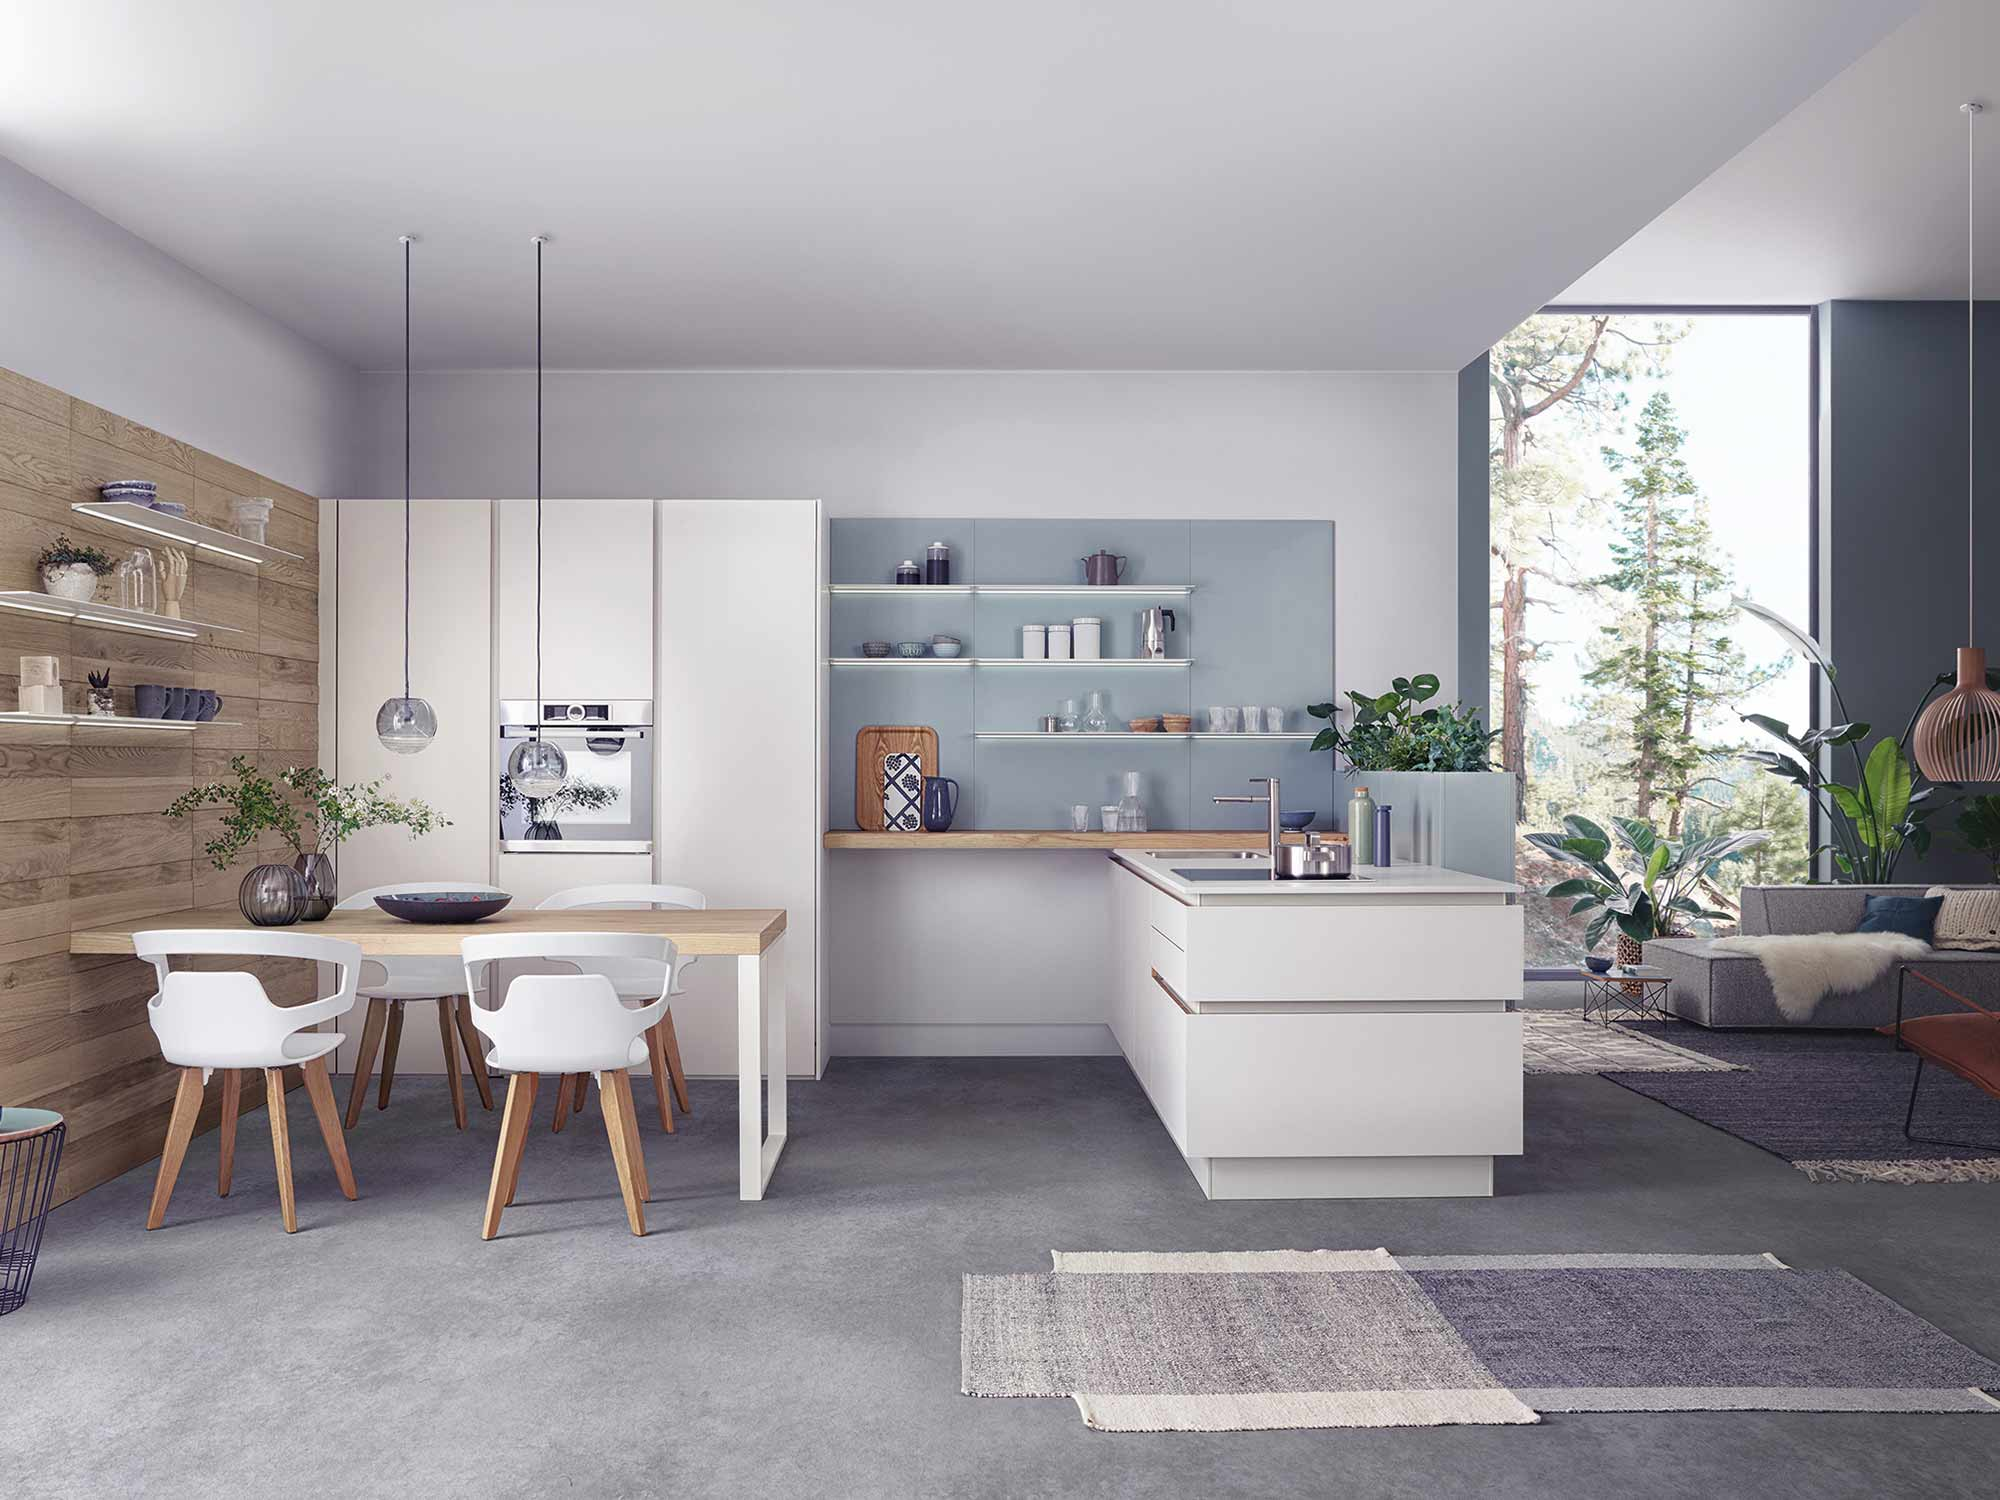 German designer kitchen and living area by Hubble